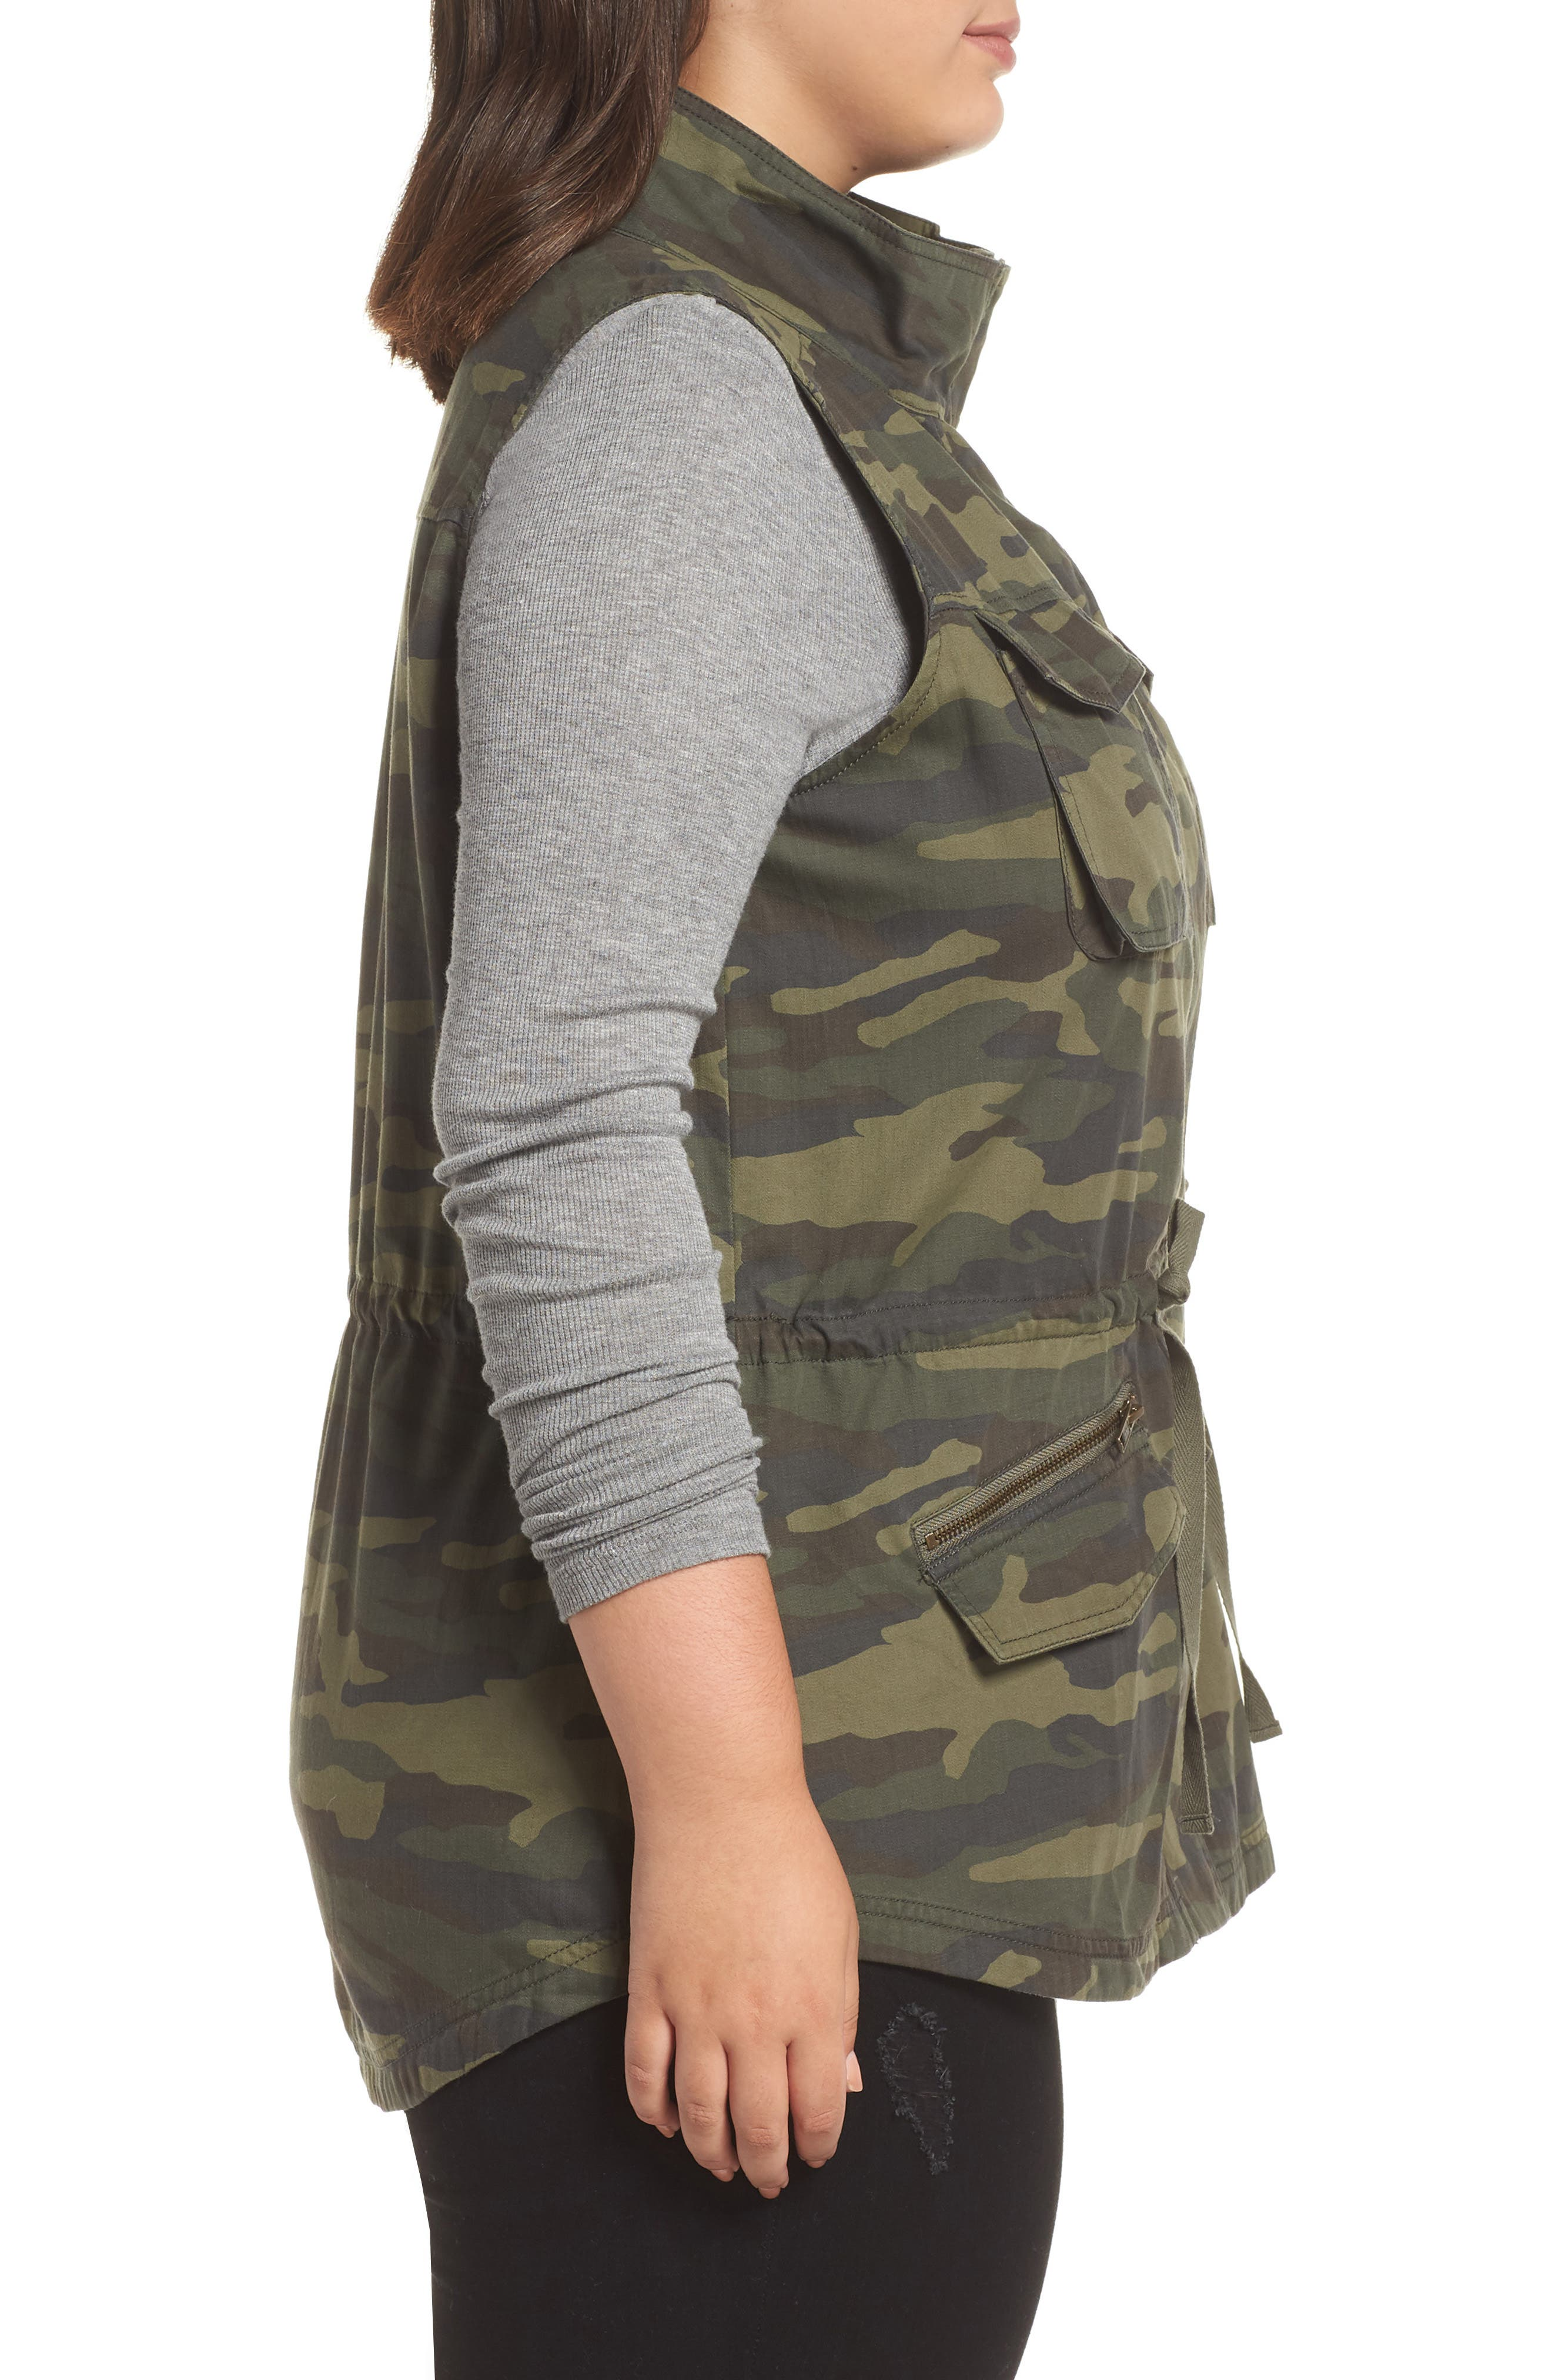 Utility Vest,                             Alternate thumbnail 3, color,                             OLIVE LG CAMO PRT